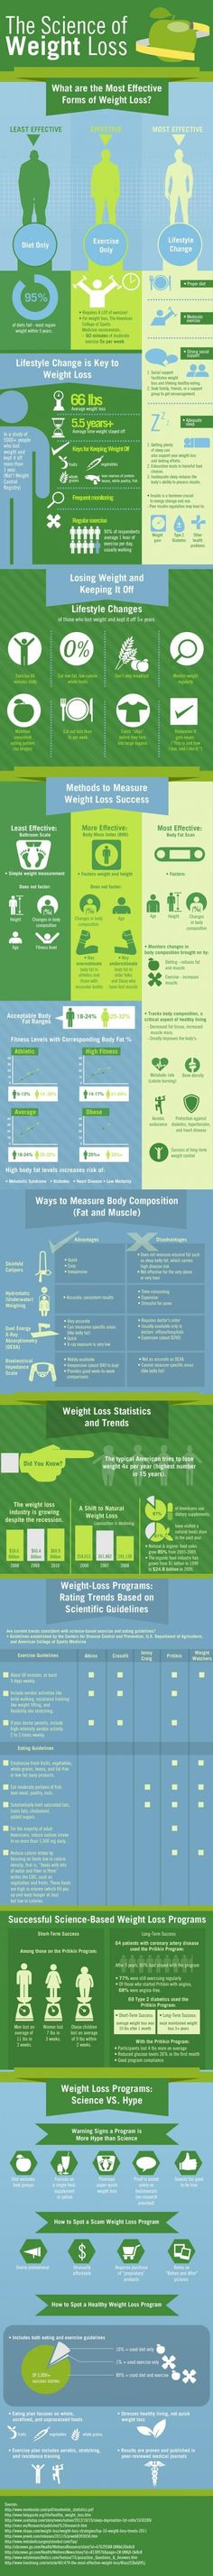 The science of weight loss (Infographic) | Sciencedump find more relevant stuff: victoriajohnson.wordpress.com